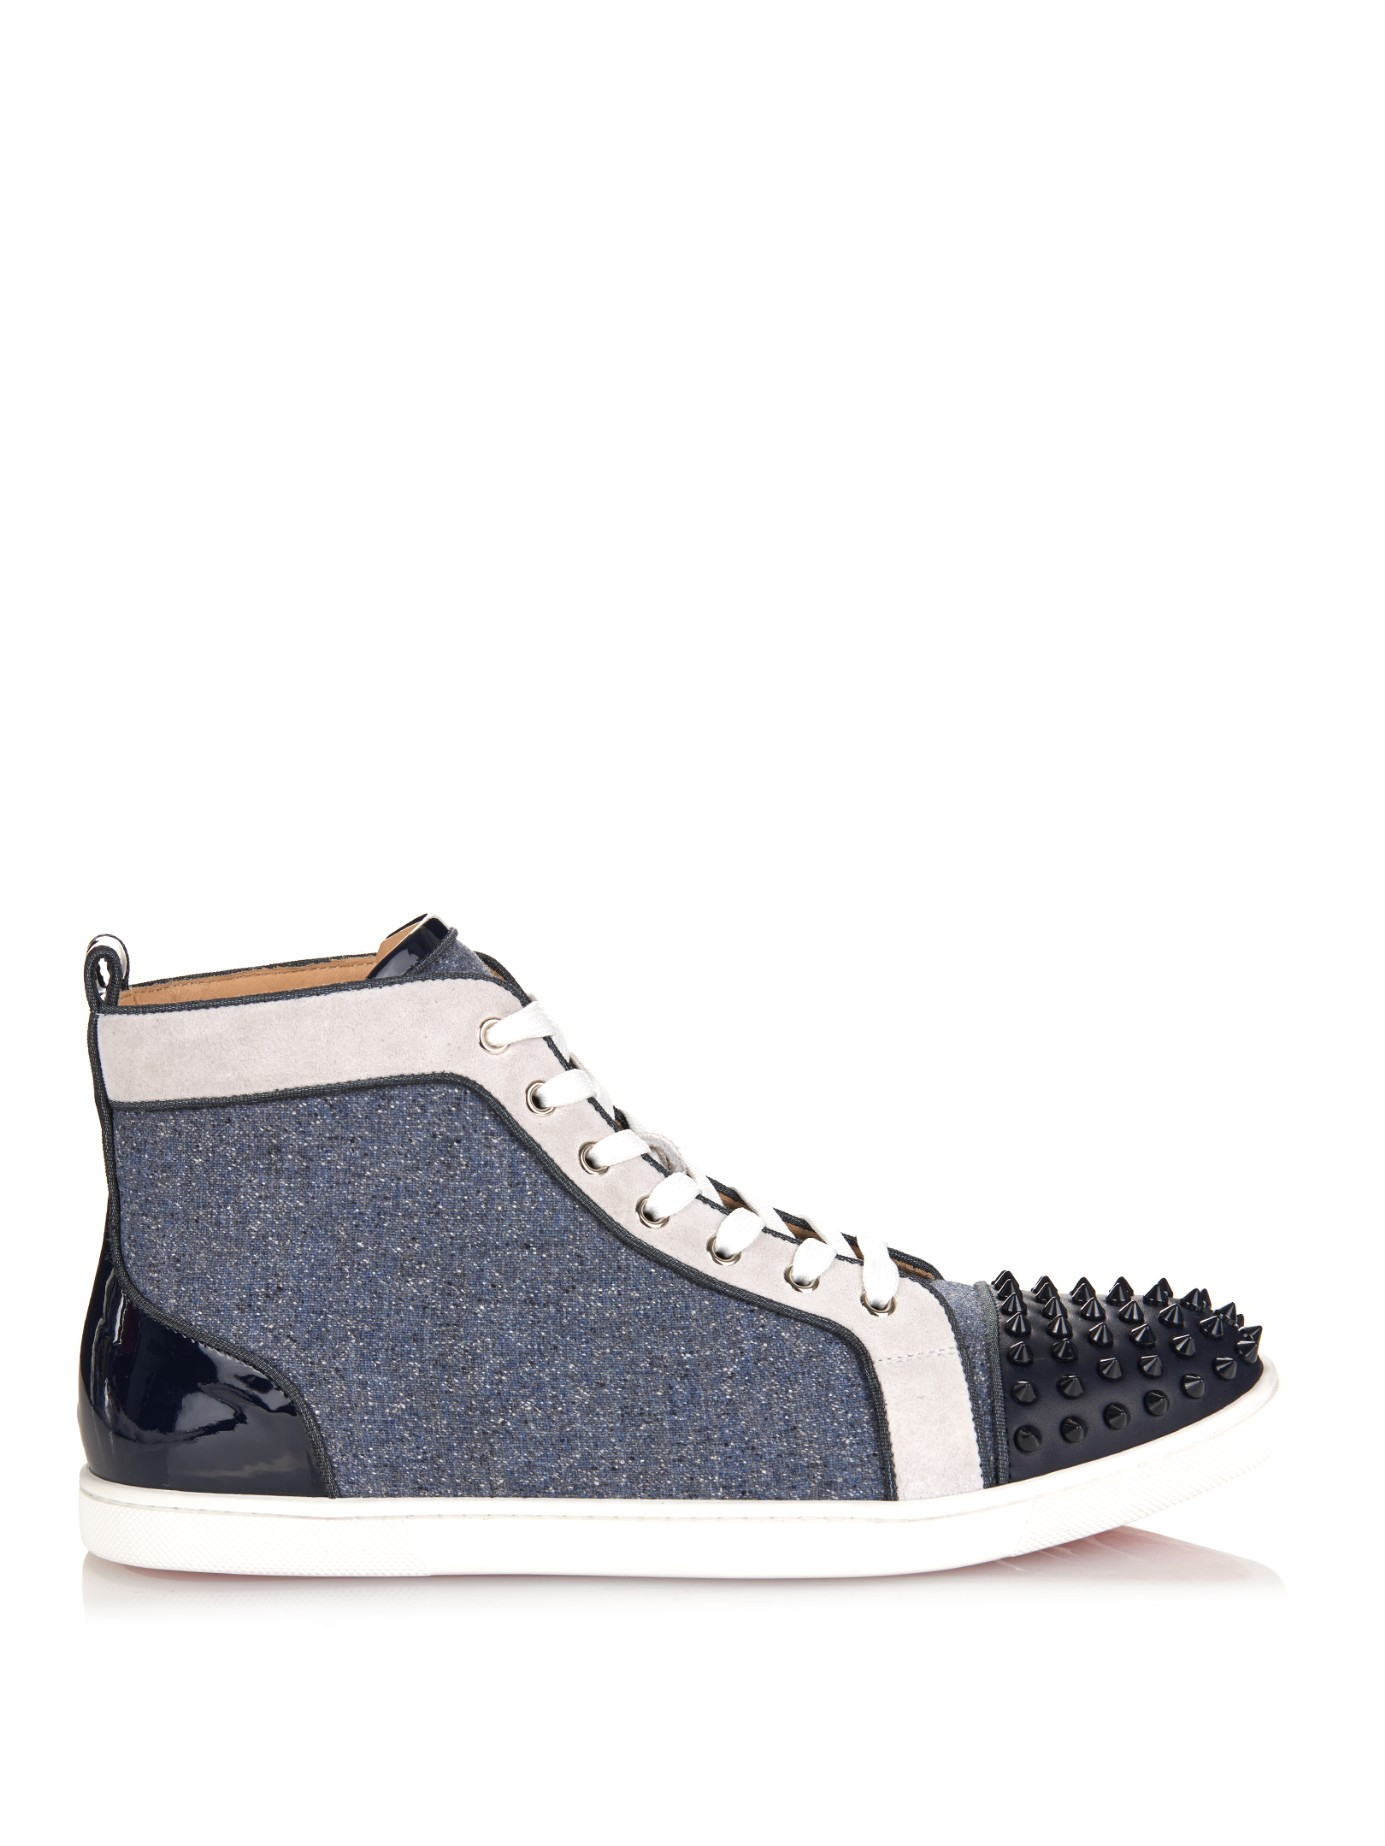 new arrival 3a3b4 b1513 Men's Blue Bip Bip Orlato Spiked High-Top Sneakers